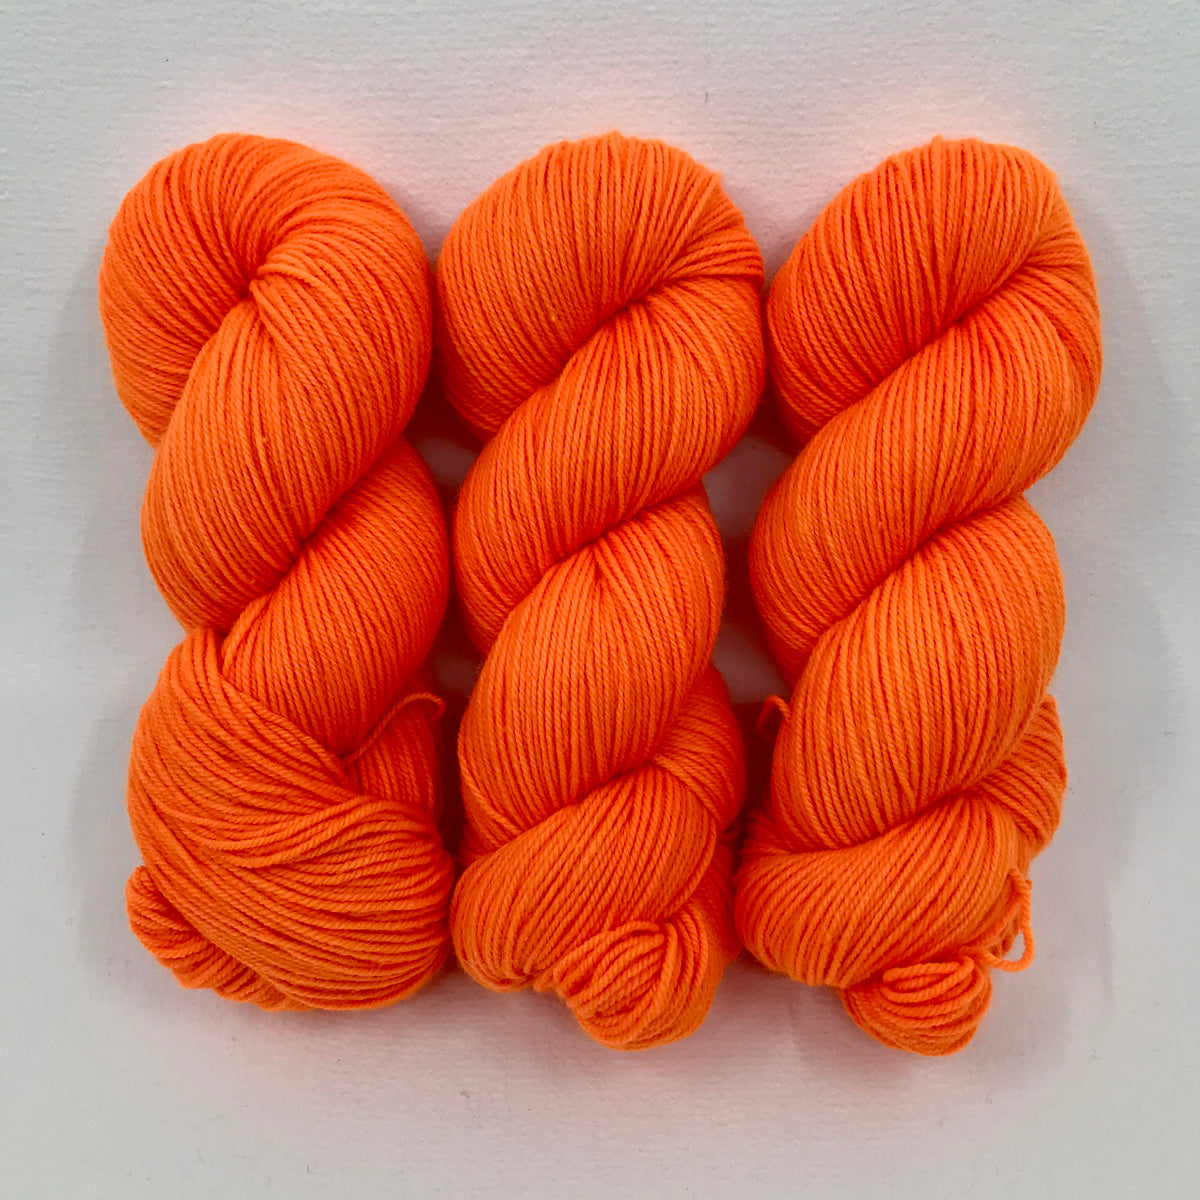 Orange Light Sabre - Merino Singles - Dyed Stock